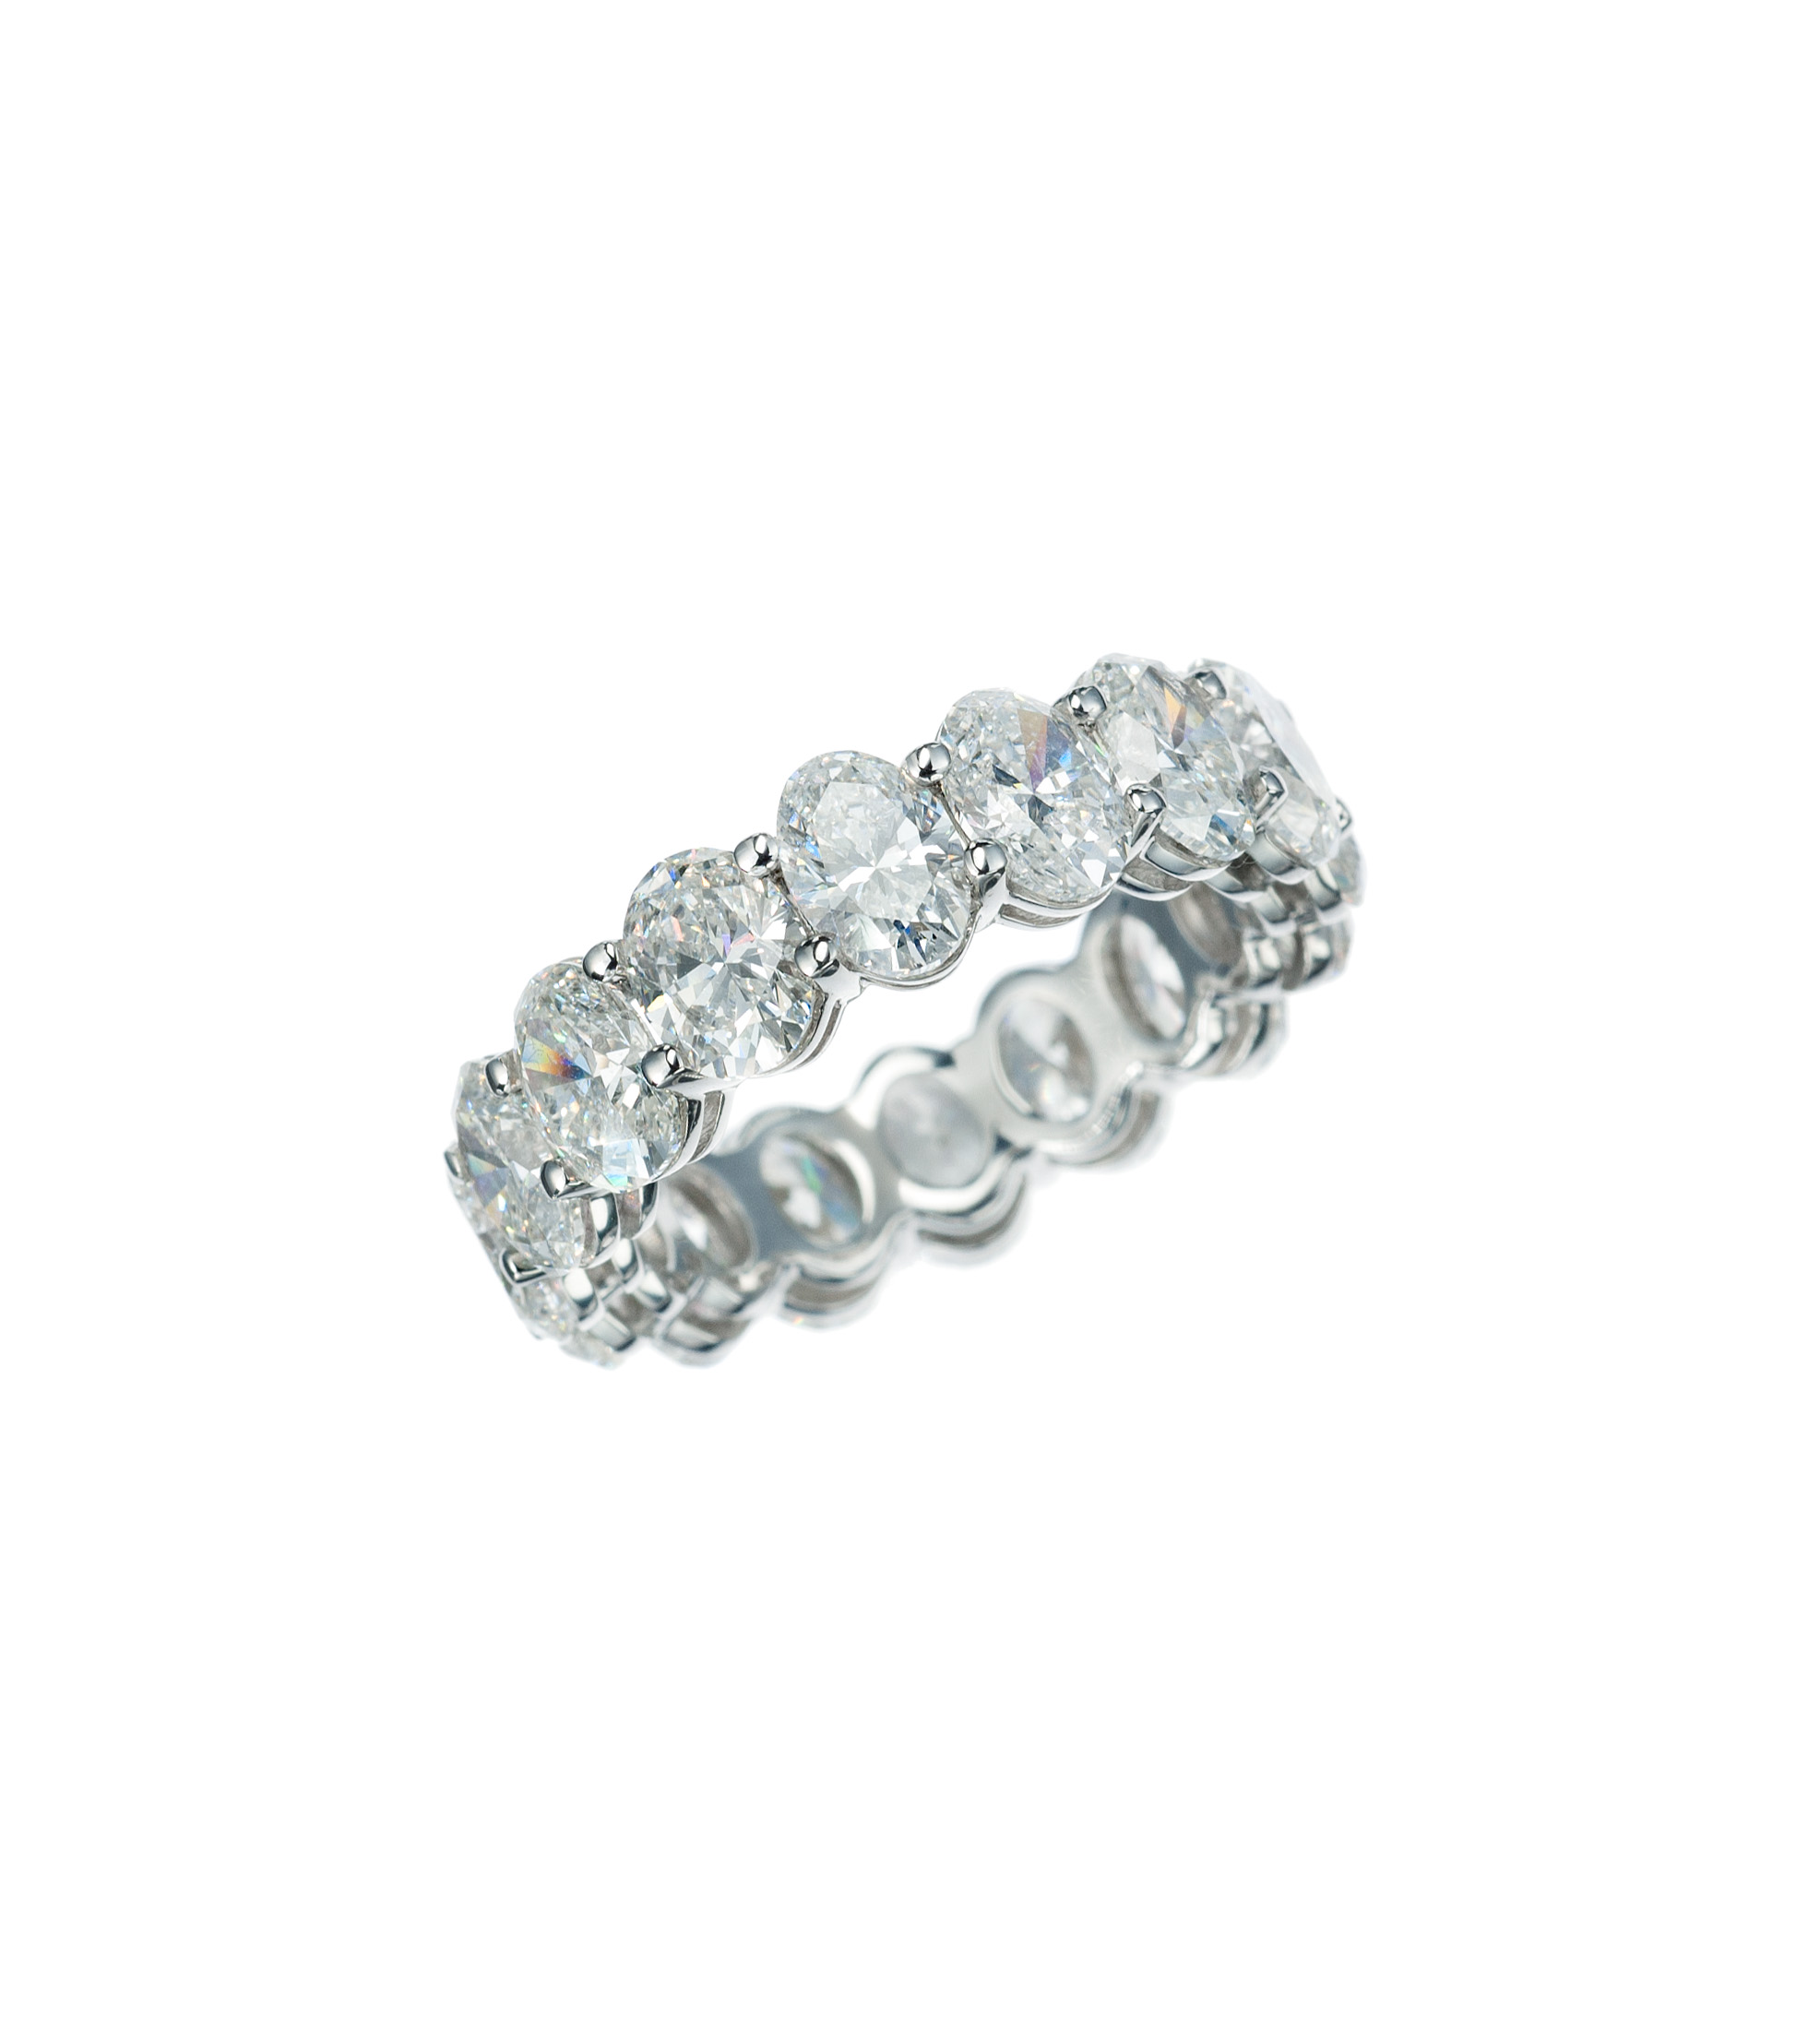 Oval-cut diamond eternity band